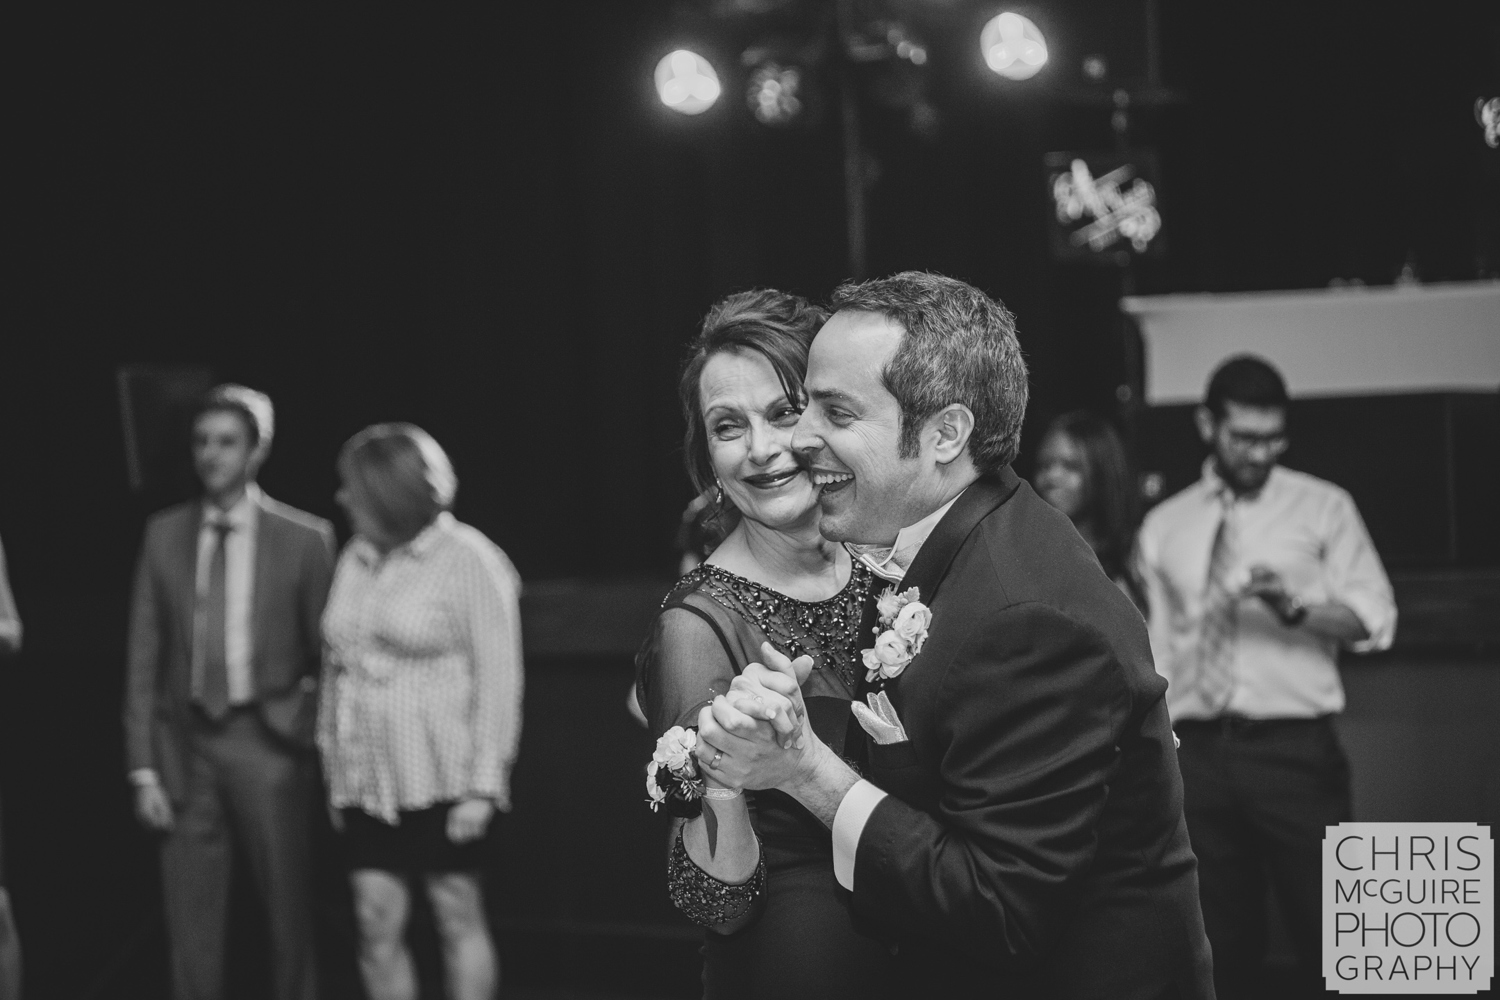 groom and mother dance at wedding